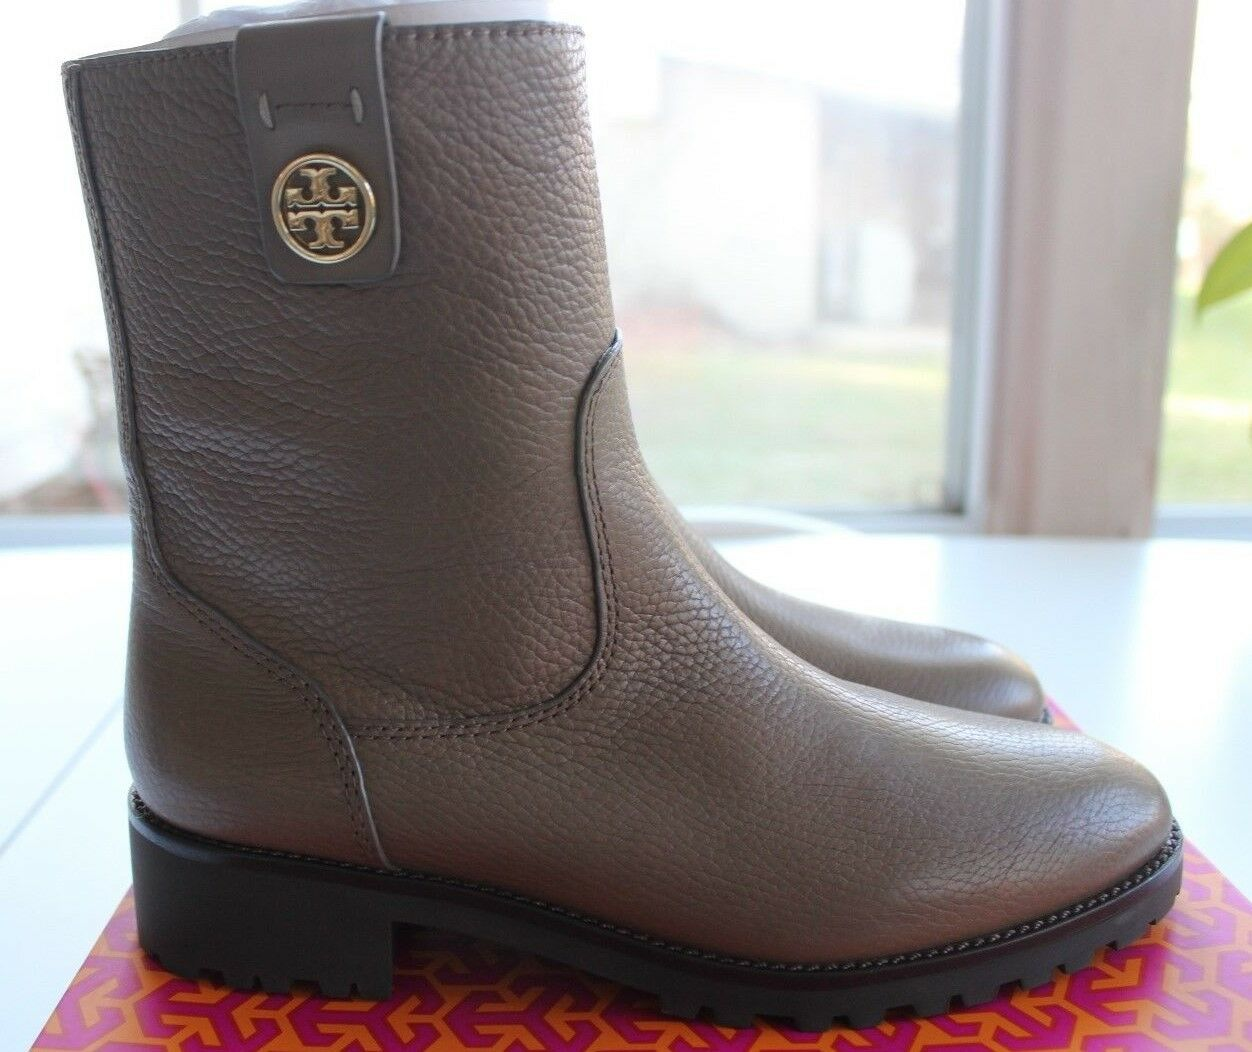 NIB Authentic TORY BURCH Oakridge Logo Leather Leather Leather Booties in Porcini Sz 8.5  395 0f1b1e